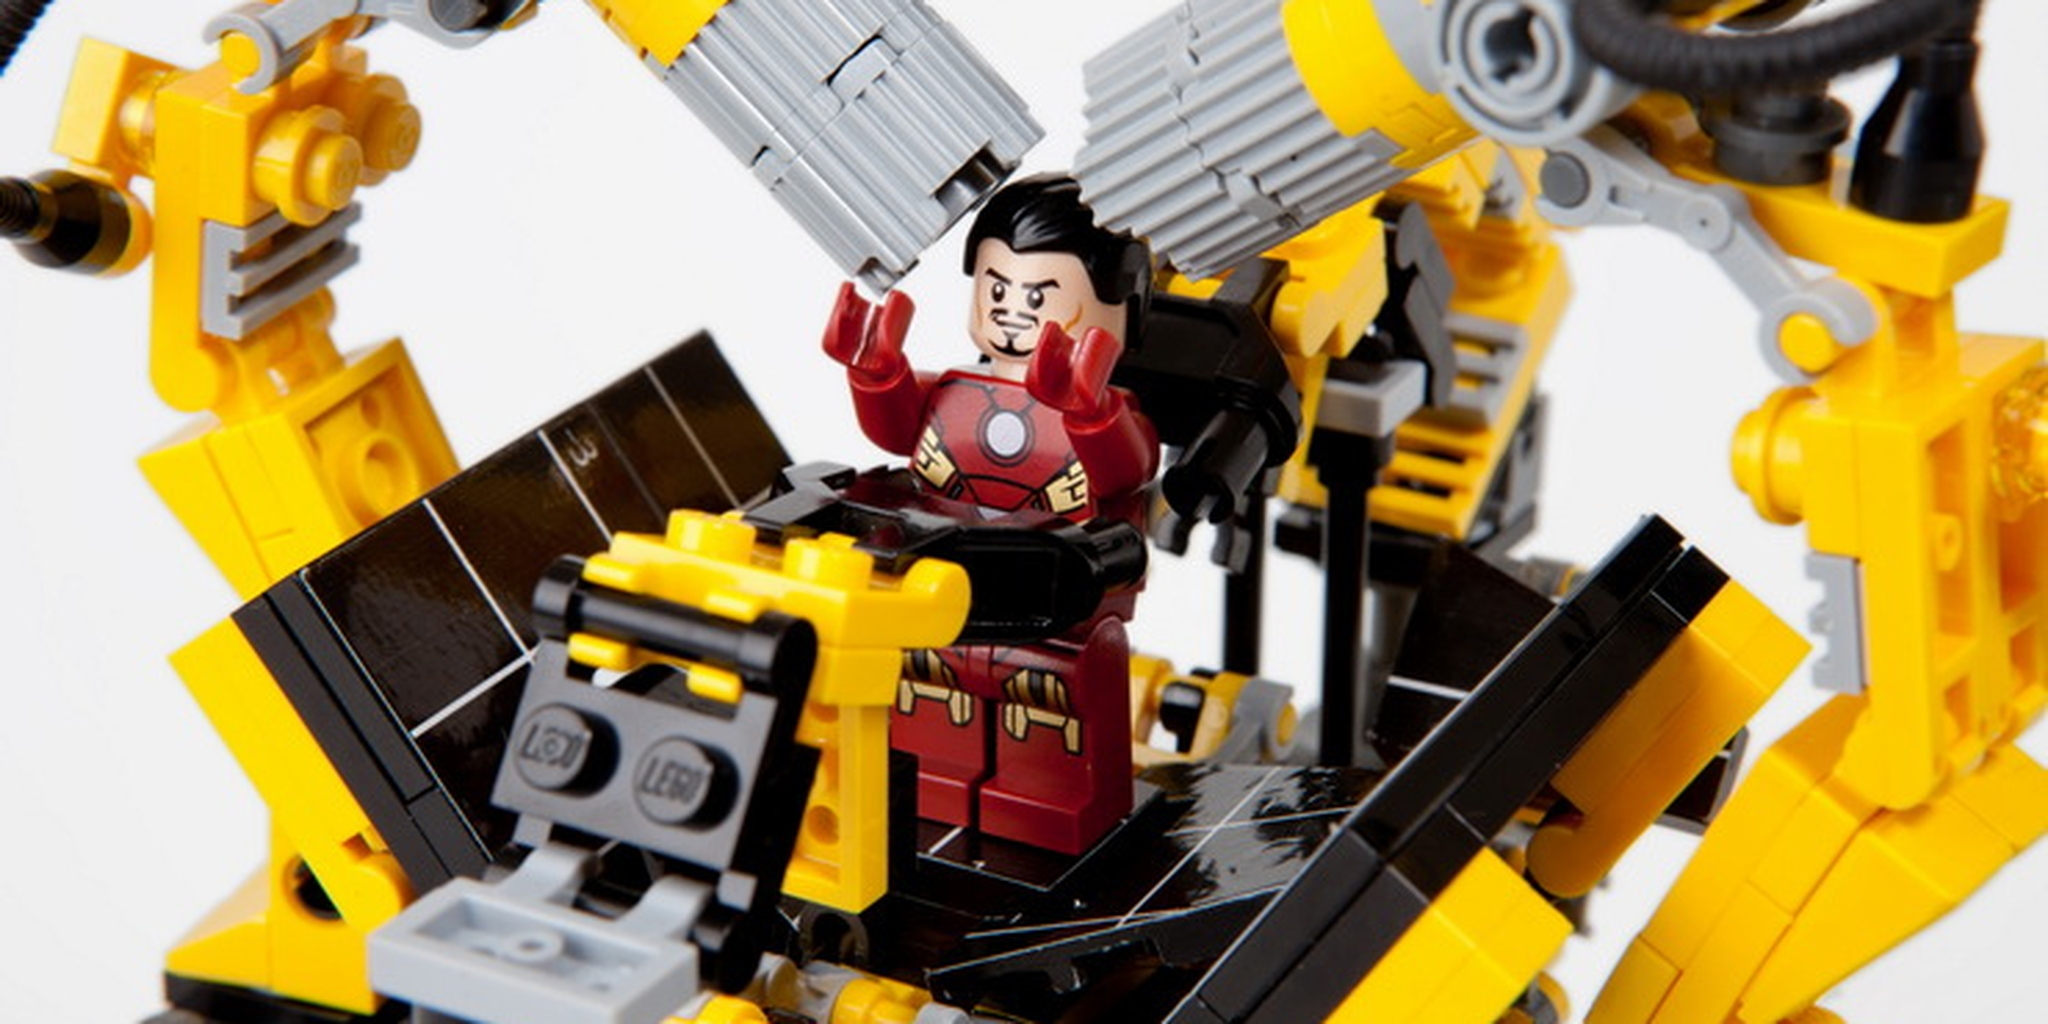 Lego is hiring people to help build models for its for Lego entwickler job